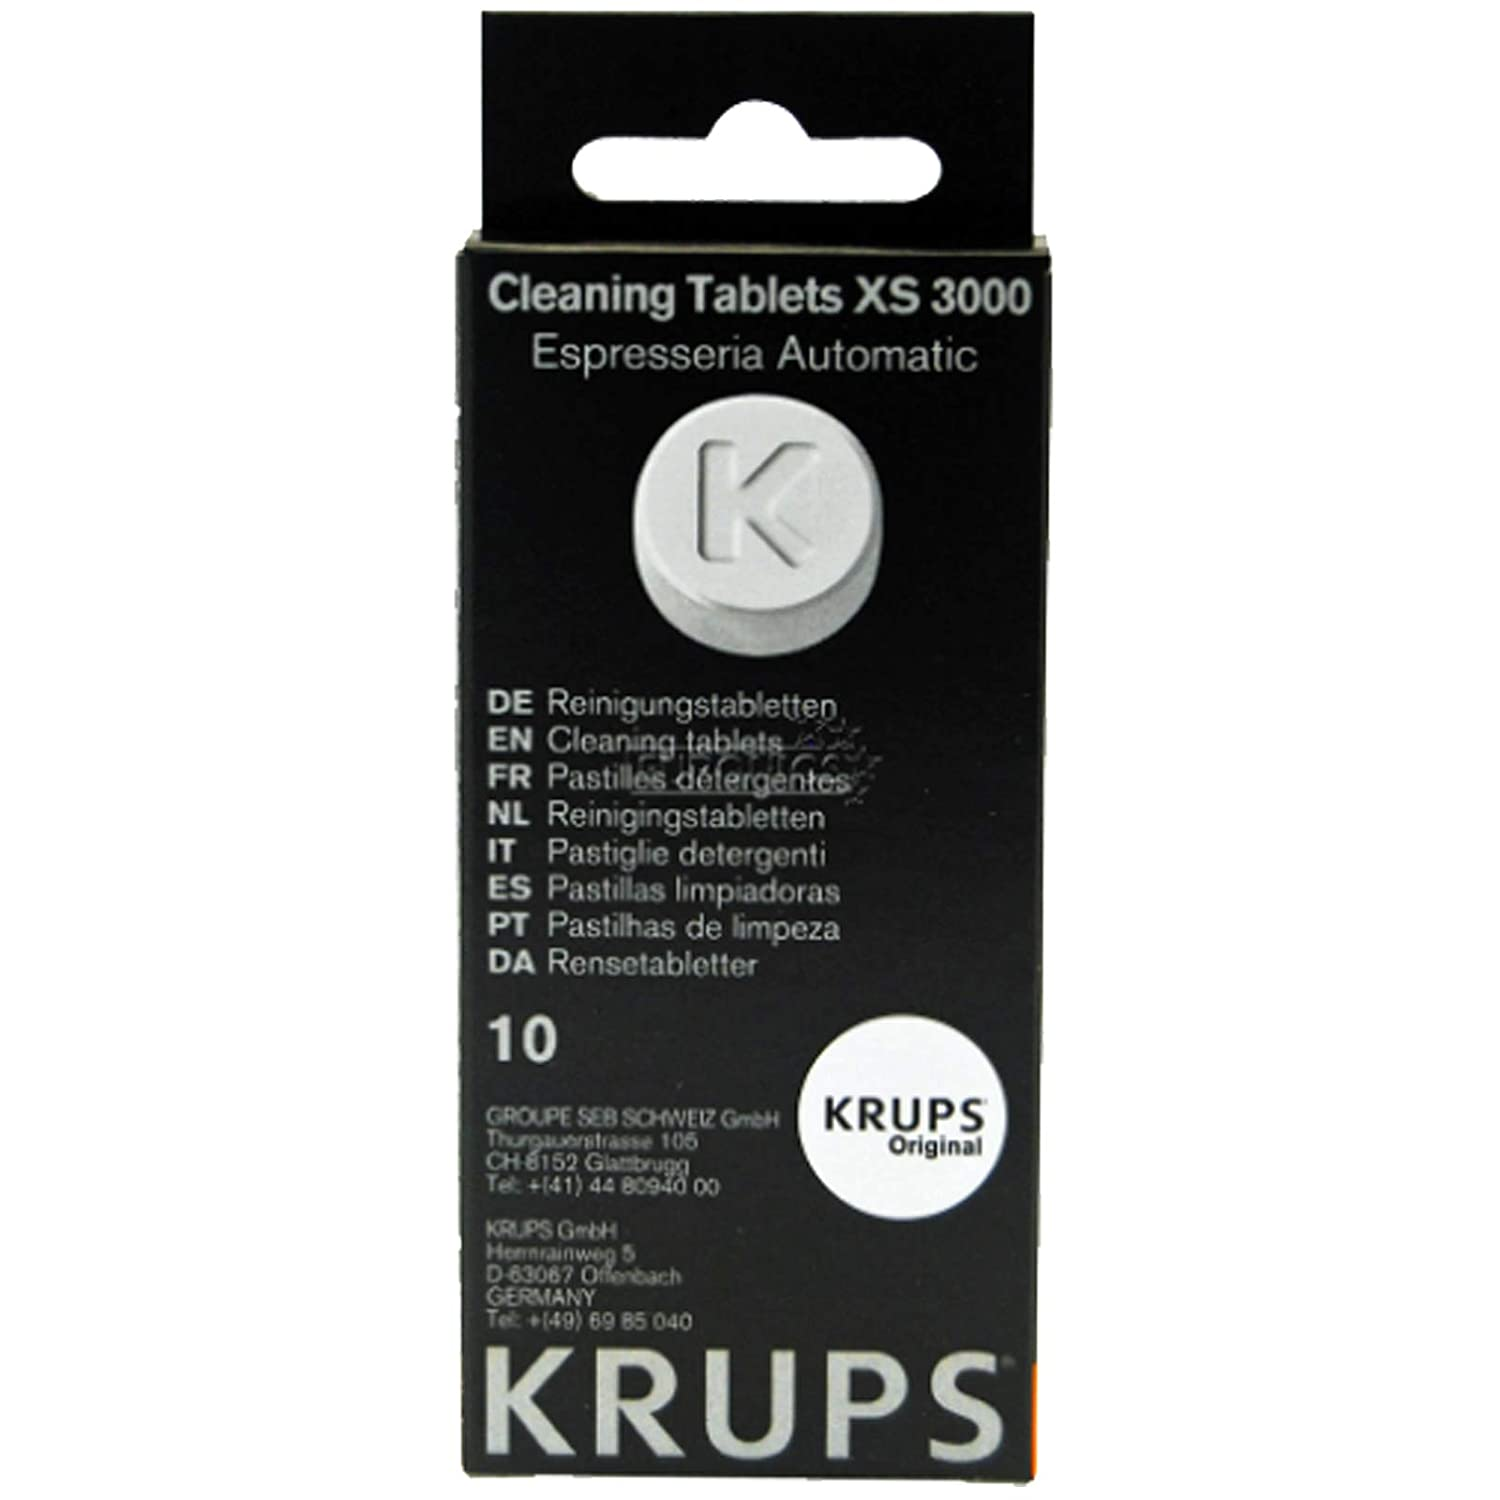 1.5g x 10 Krups XS300010 Cleaning Tablets for Espresseria Automatique Espresso Coffee Machine